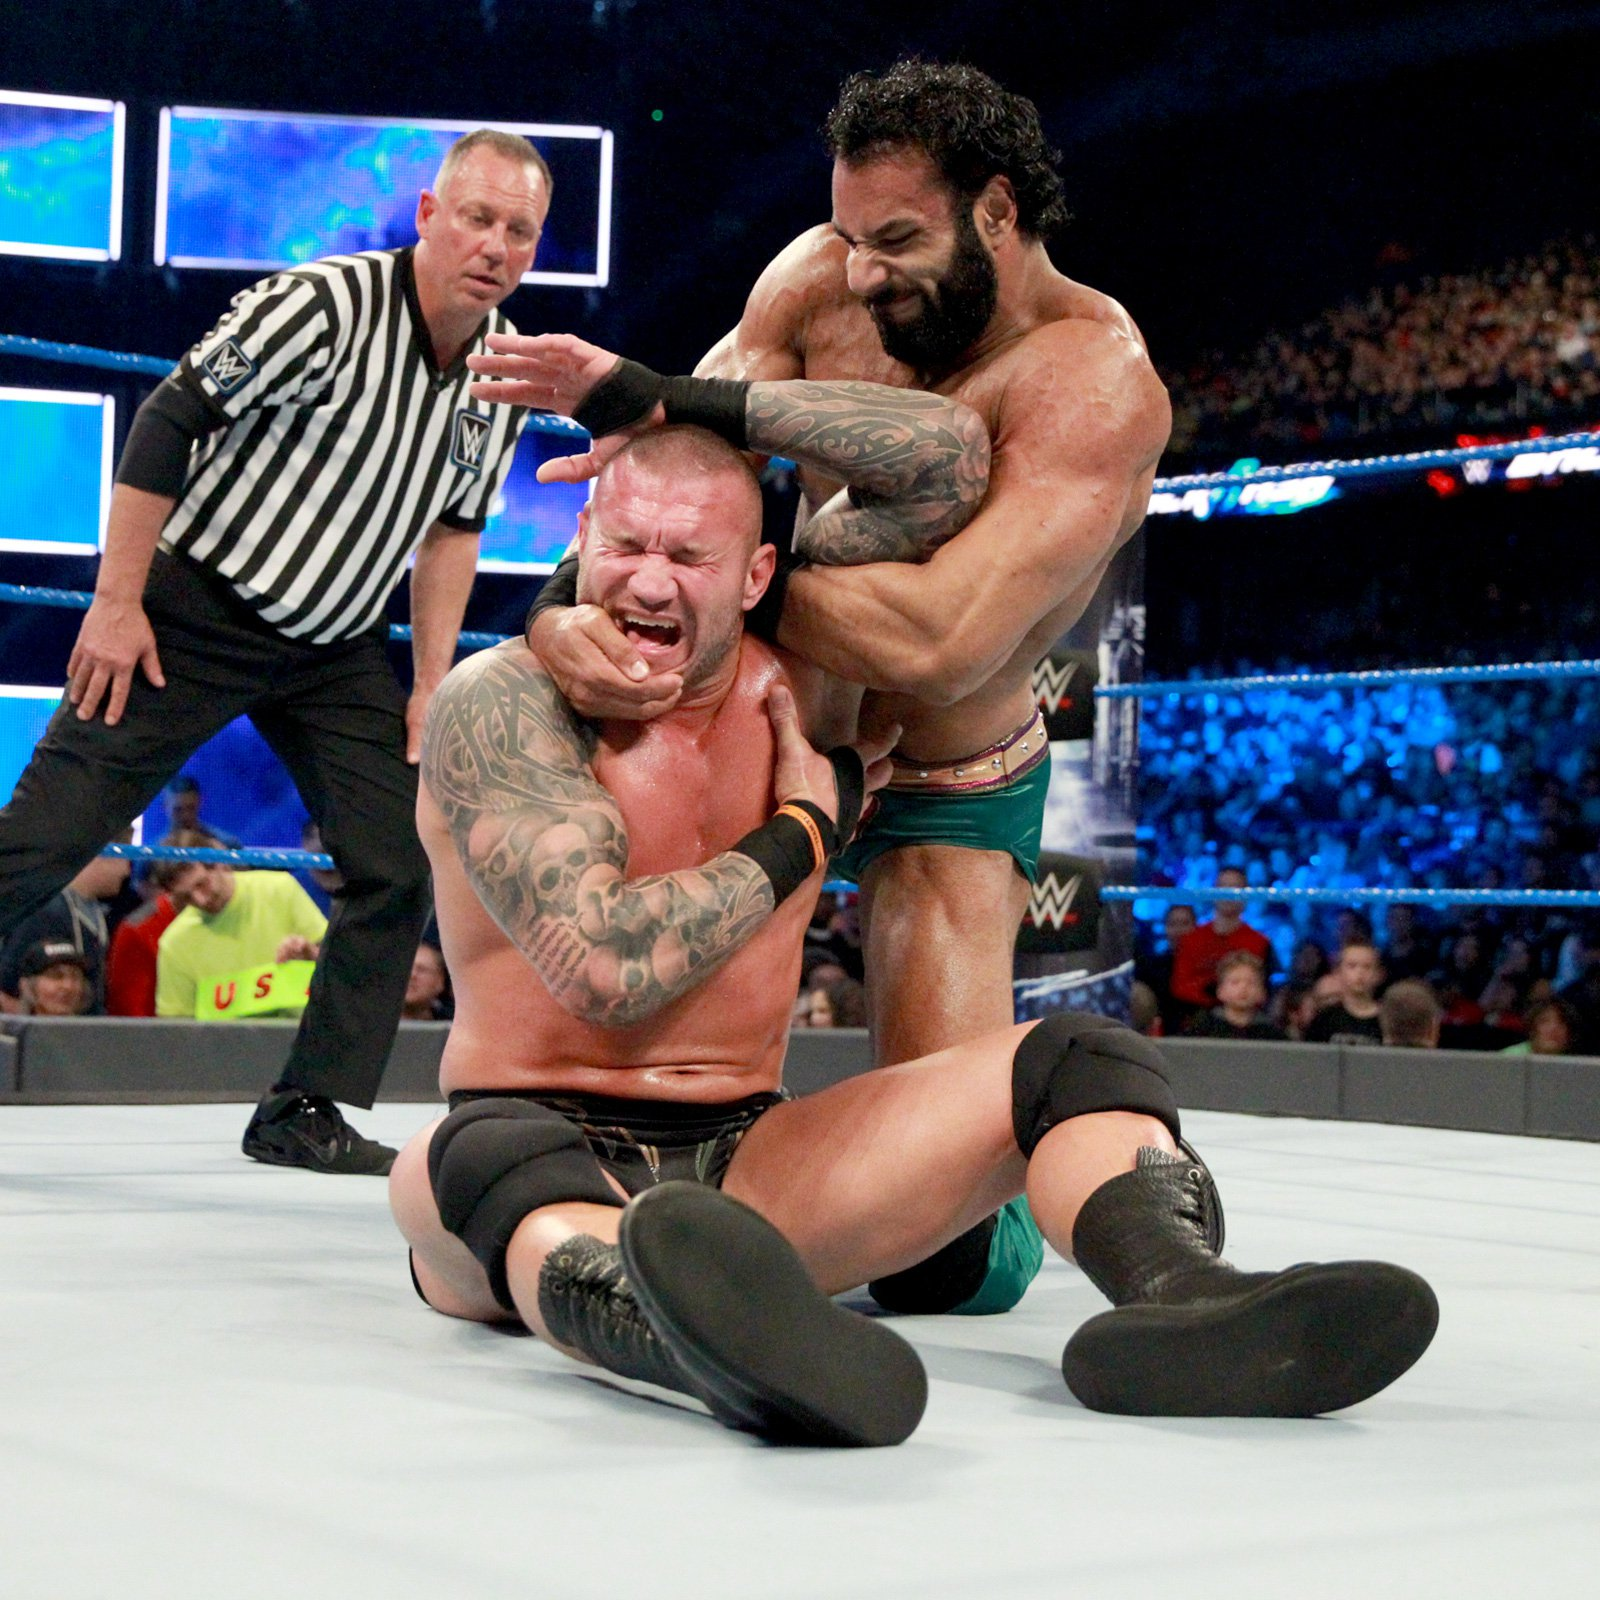 """The Modern Day Maharaja"" takes control of the contest by targeting Orton's shoulder."